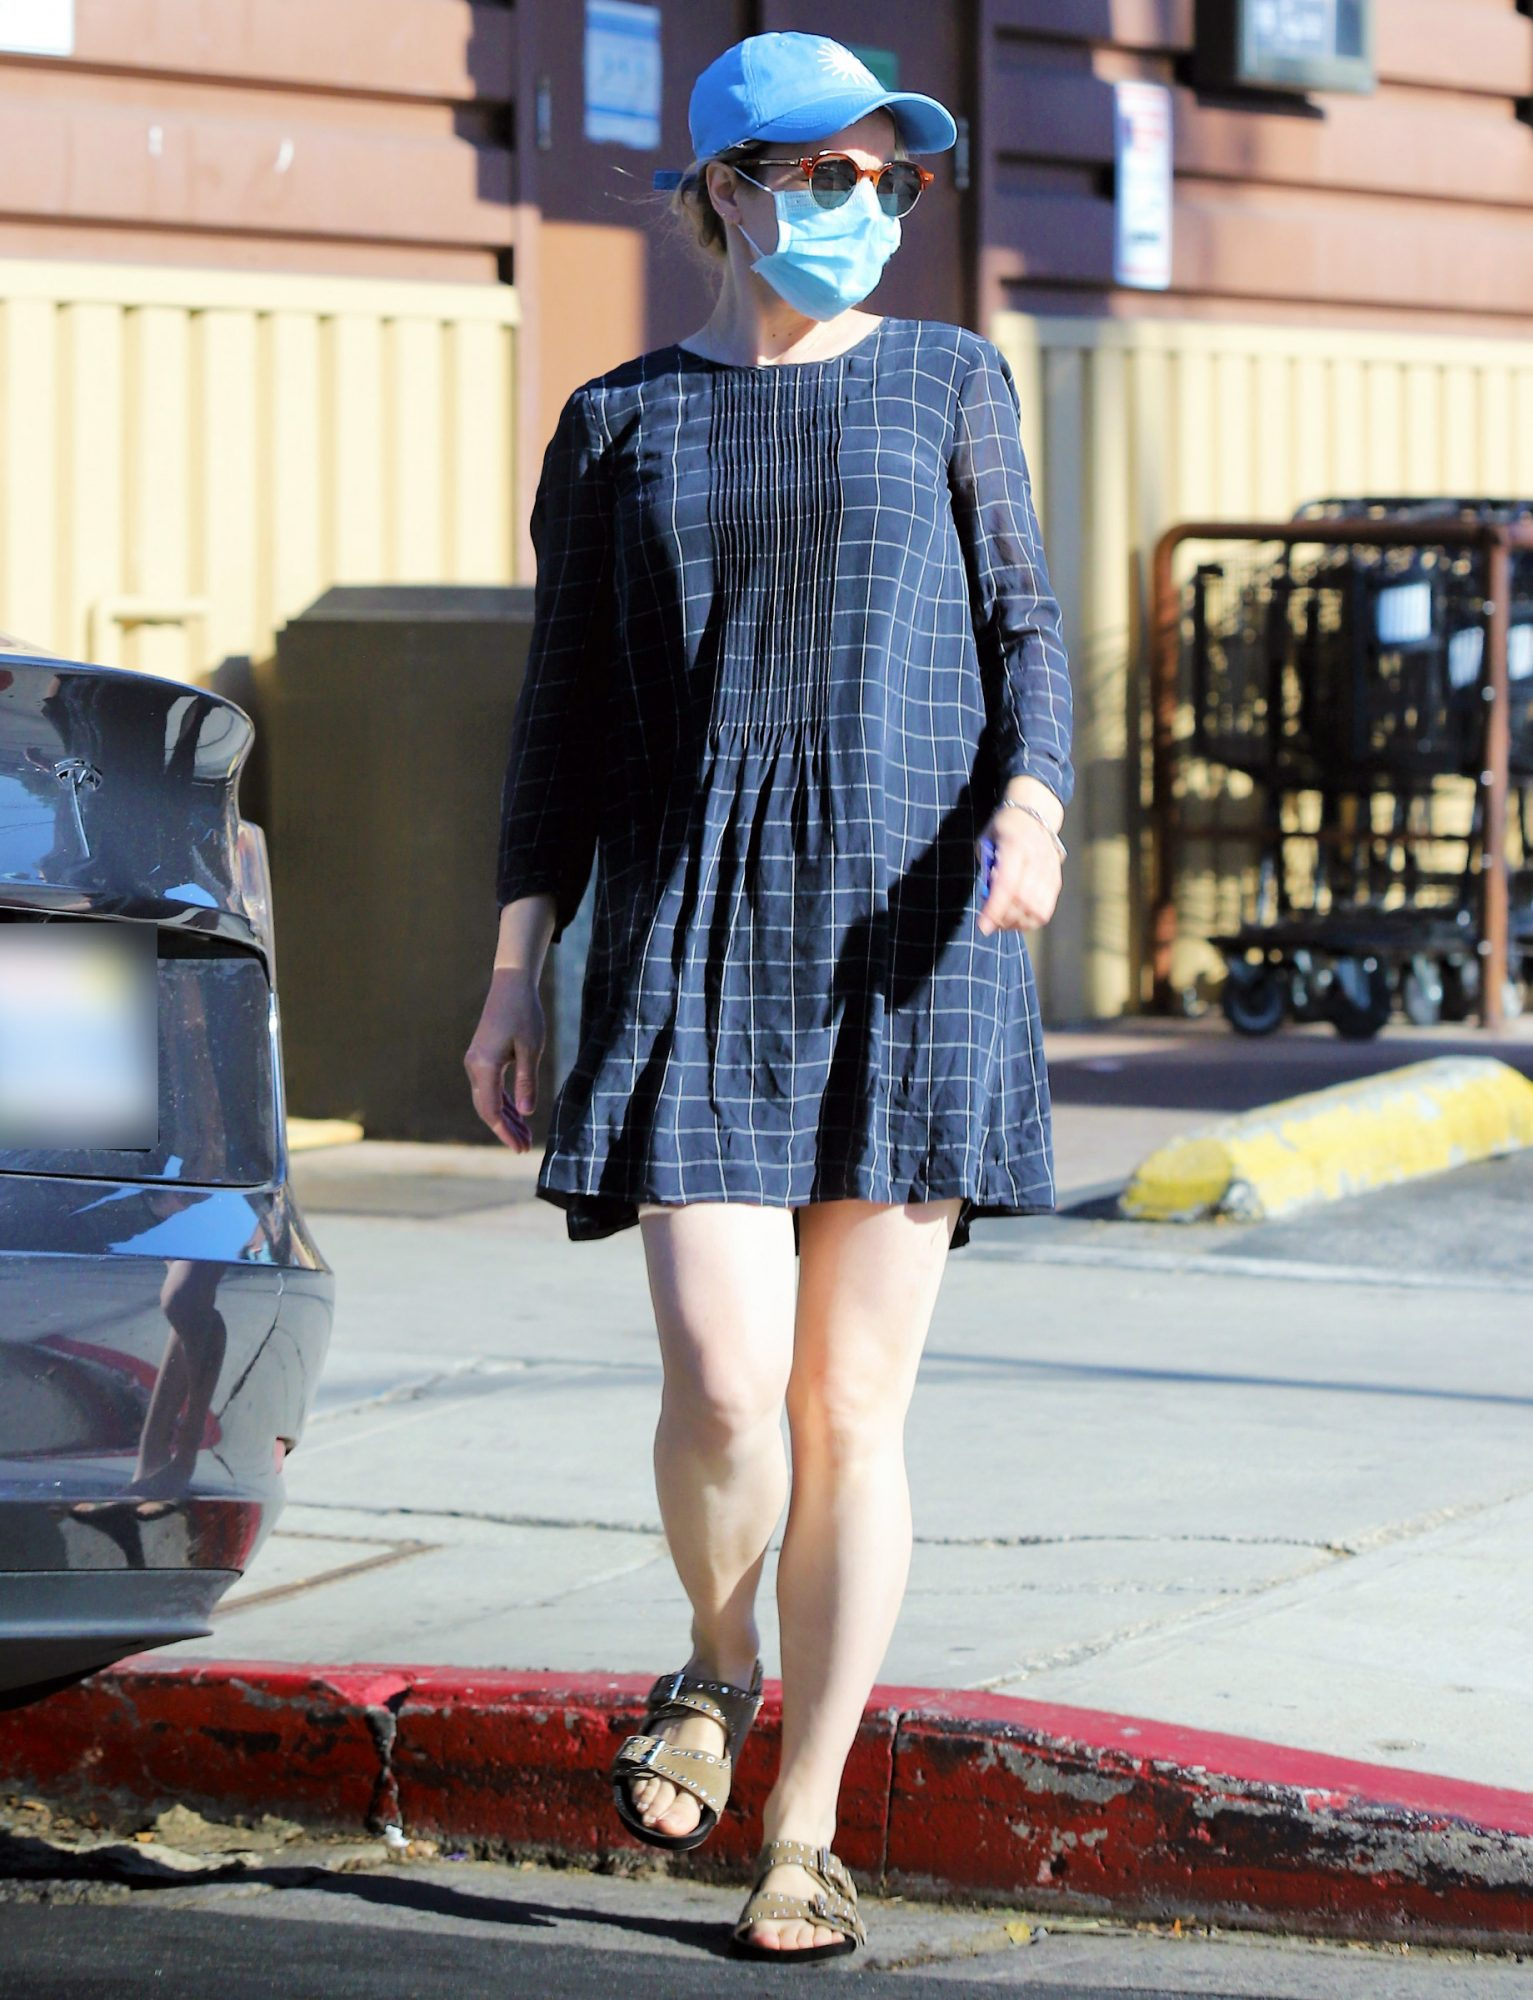 Rachel McAdams Heads to a Grocery Store for Some Eggs in Los Angeles.